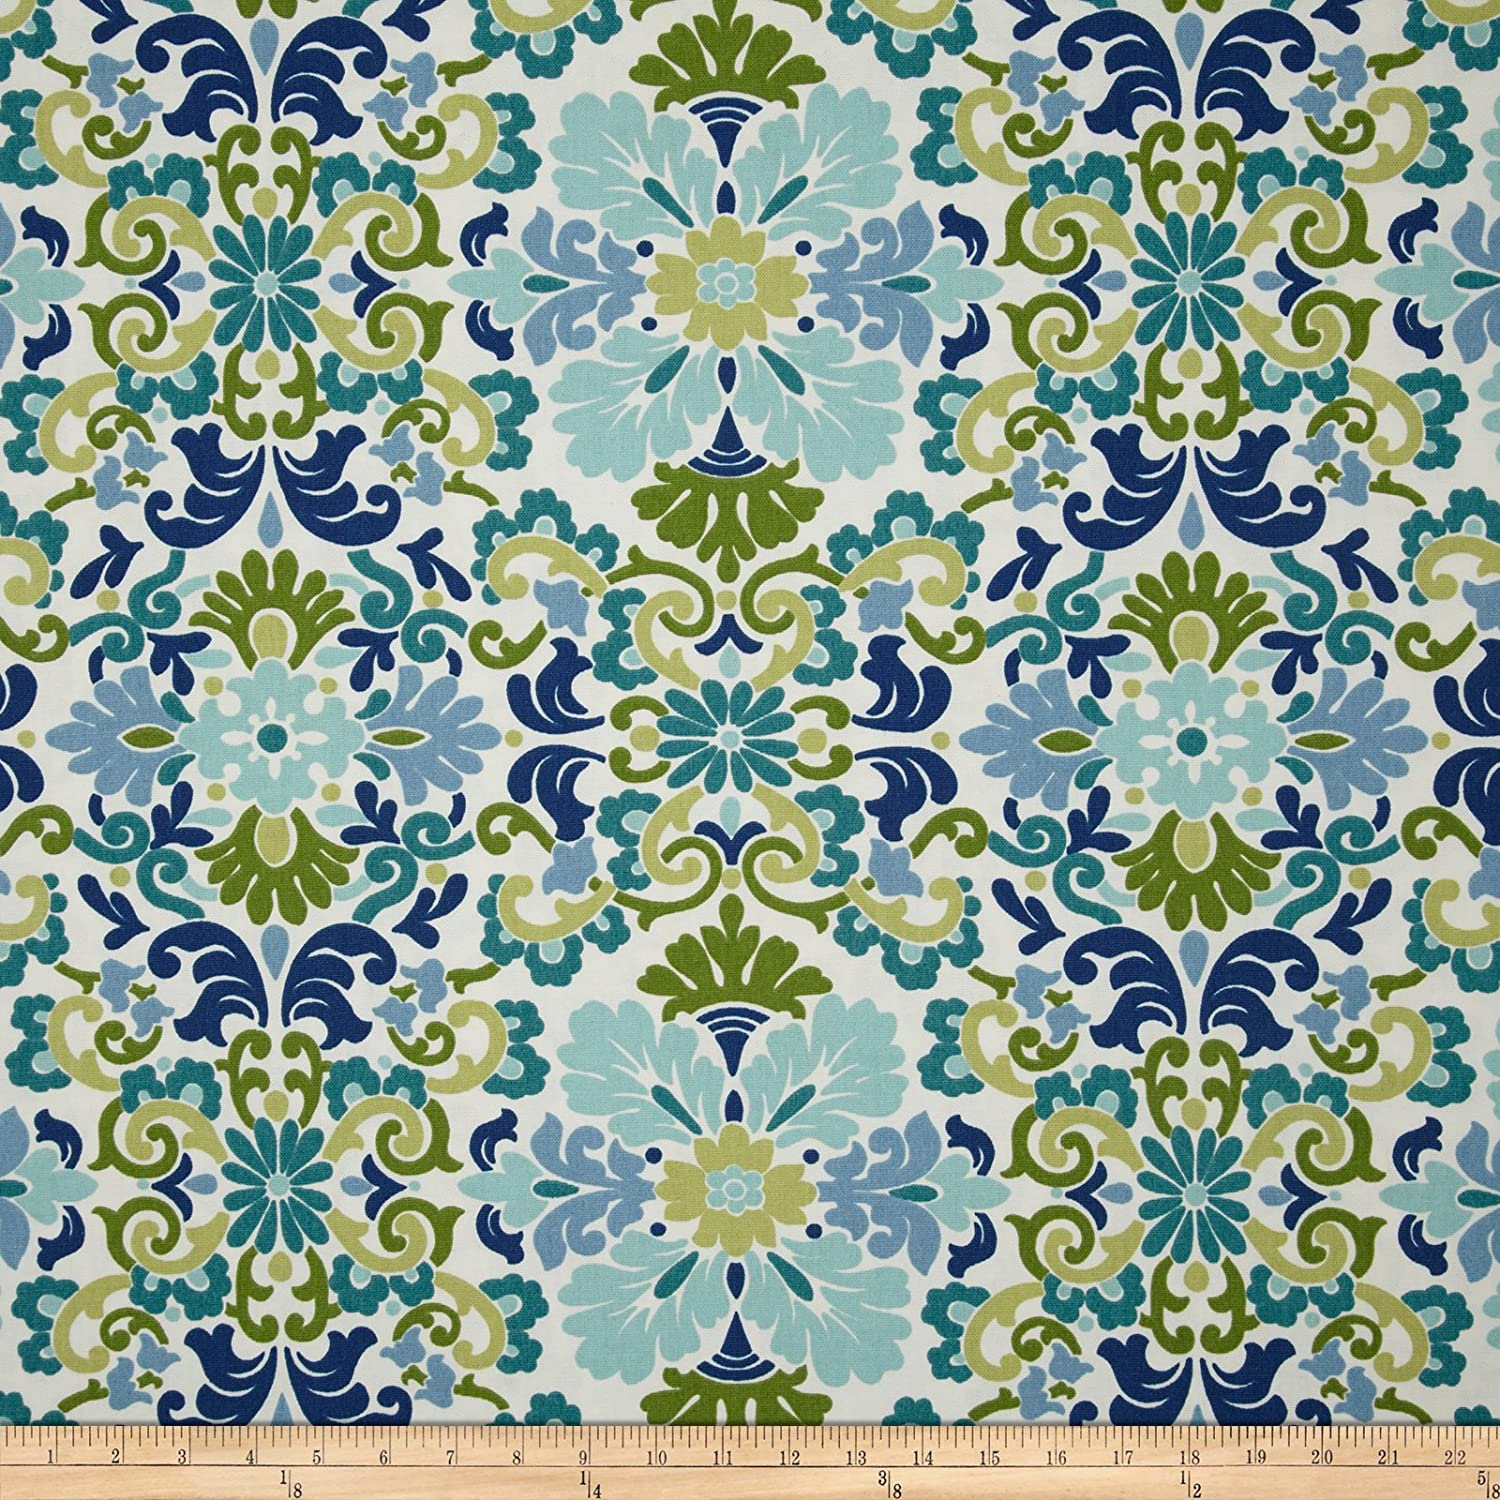 waverly folk damask seaspray fabric by the yard - Home Decor Fabric